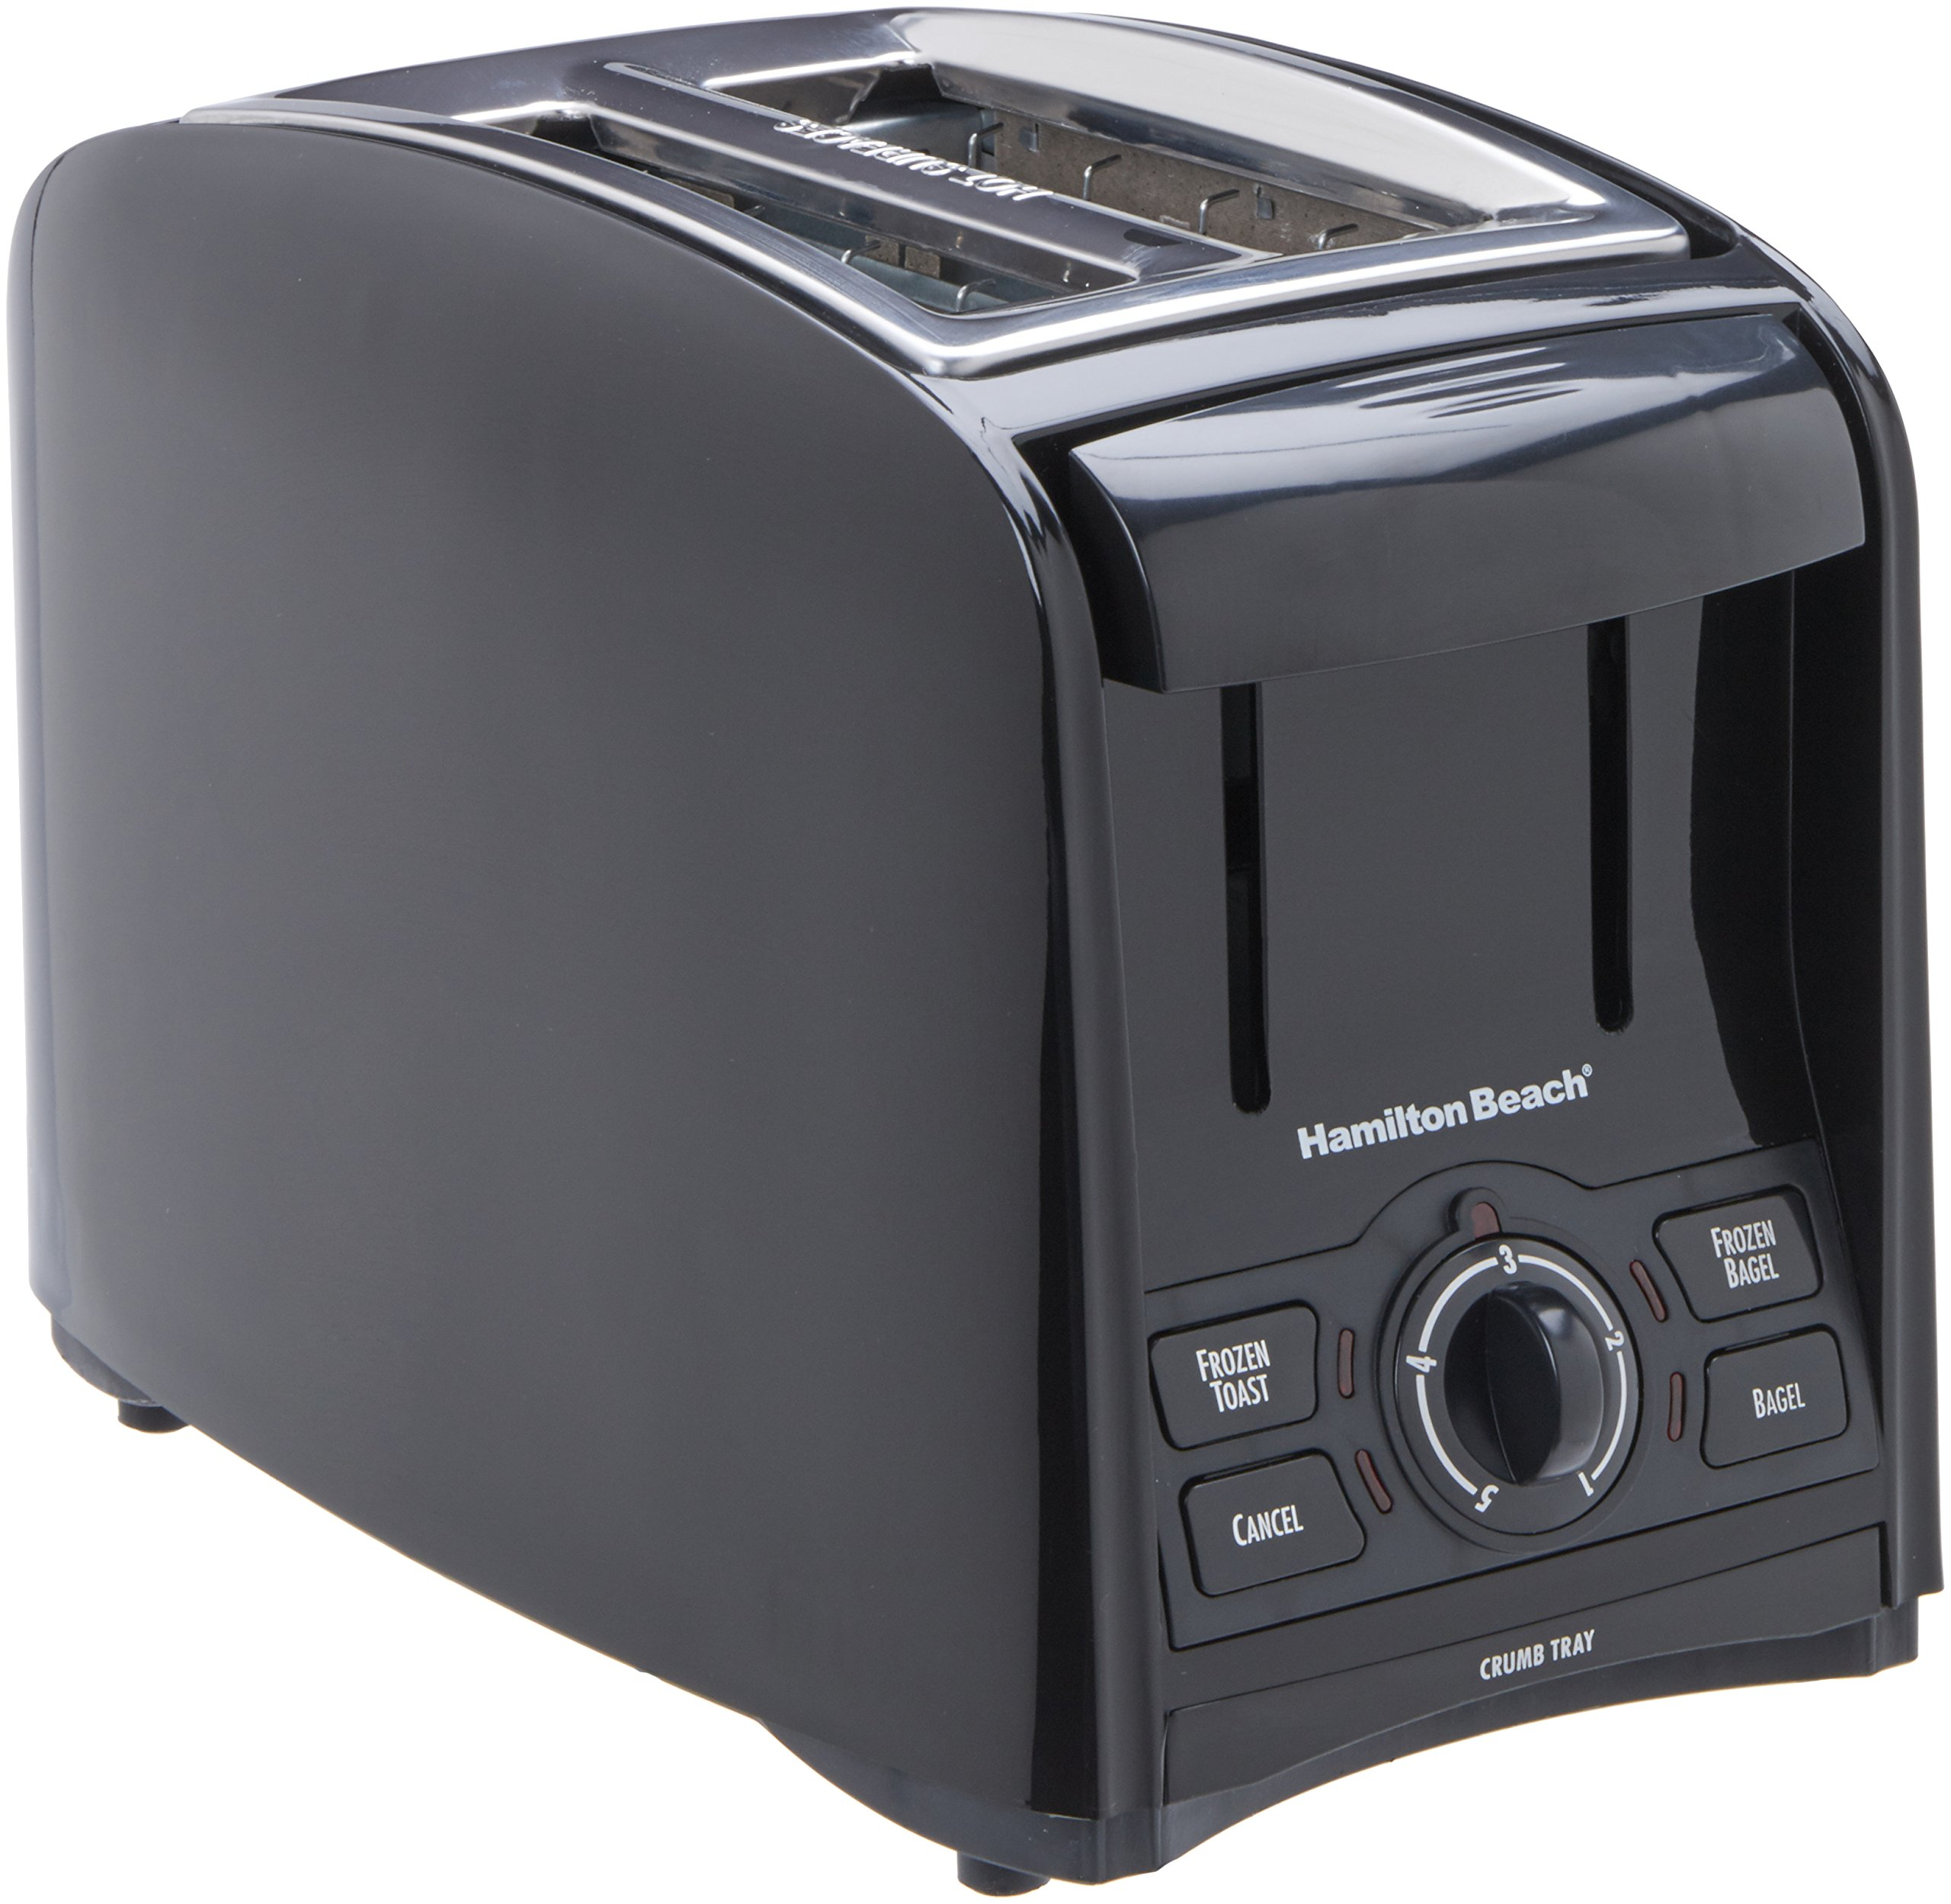 Hamilton Beach 2 Slice Cool Touch Toaster (22121)